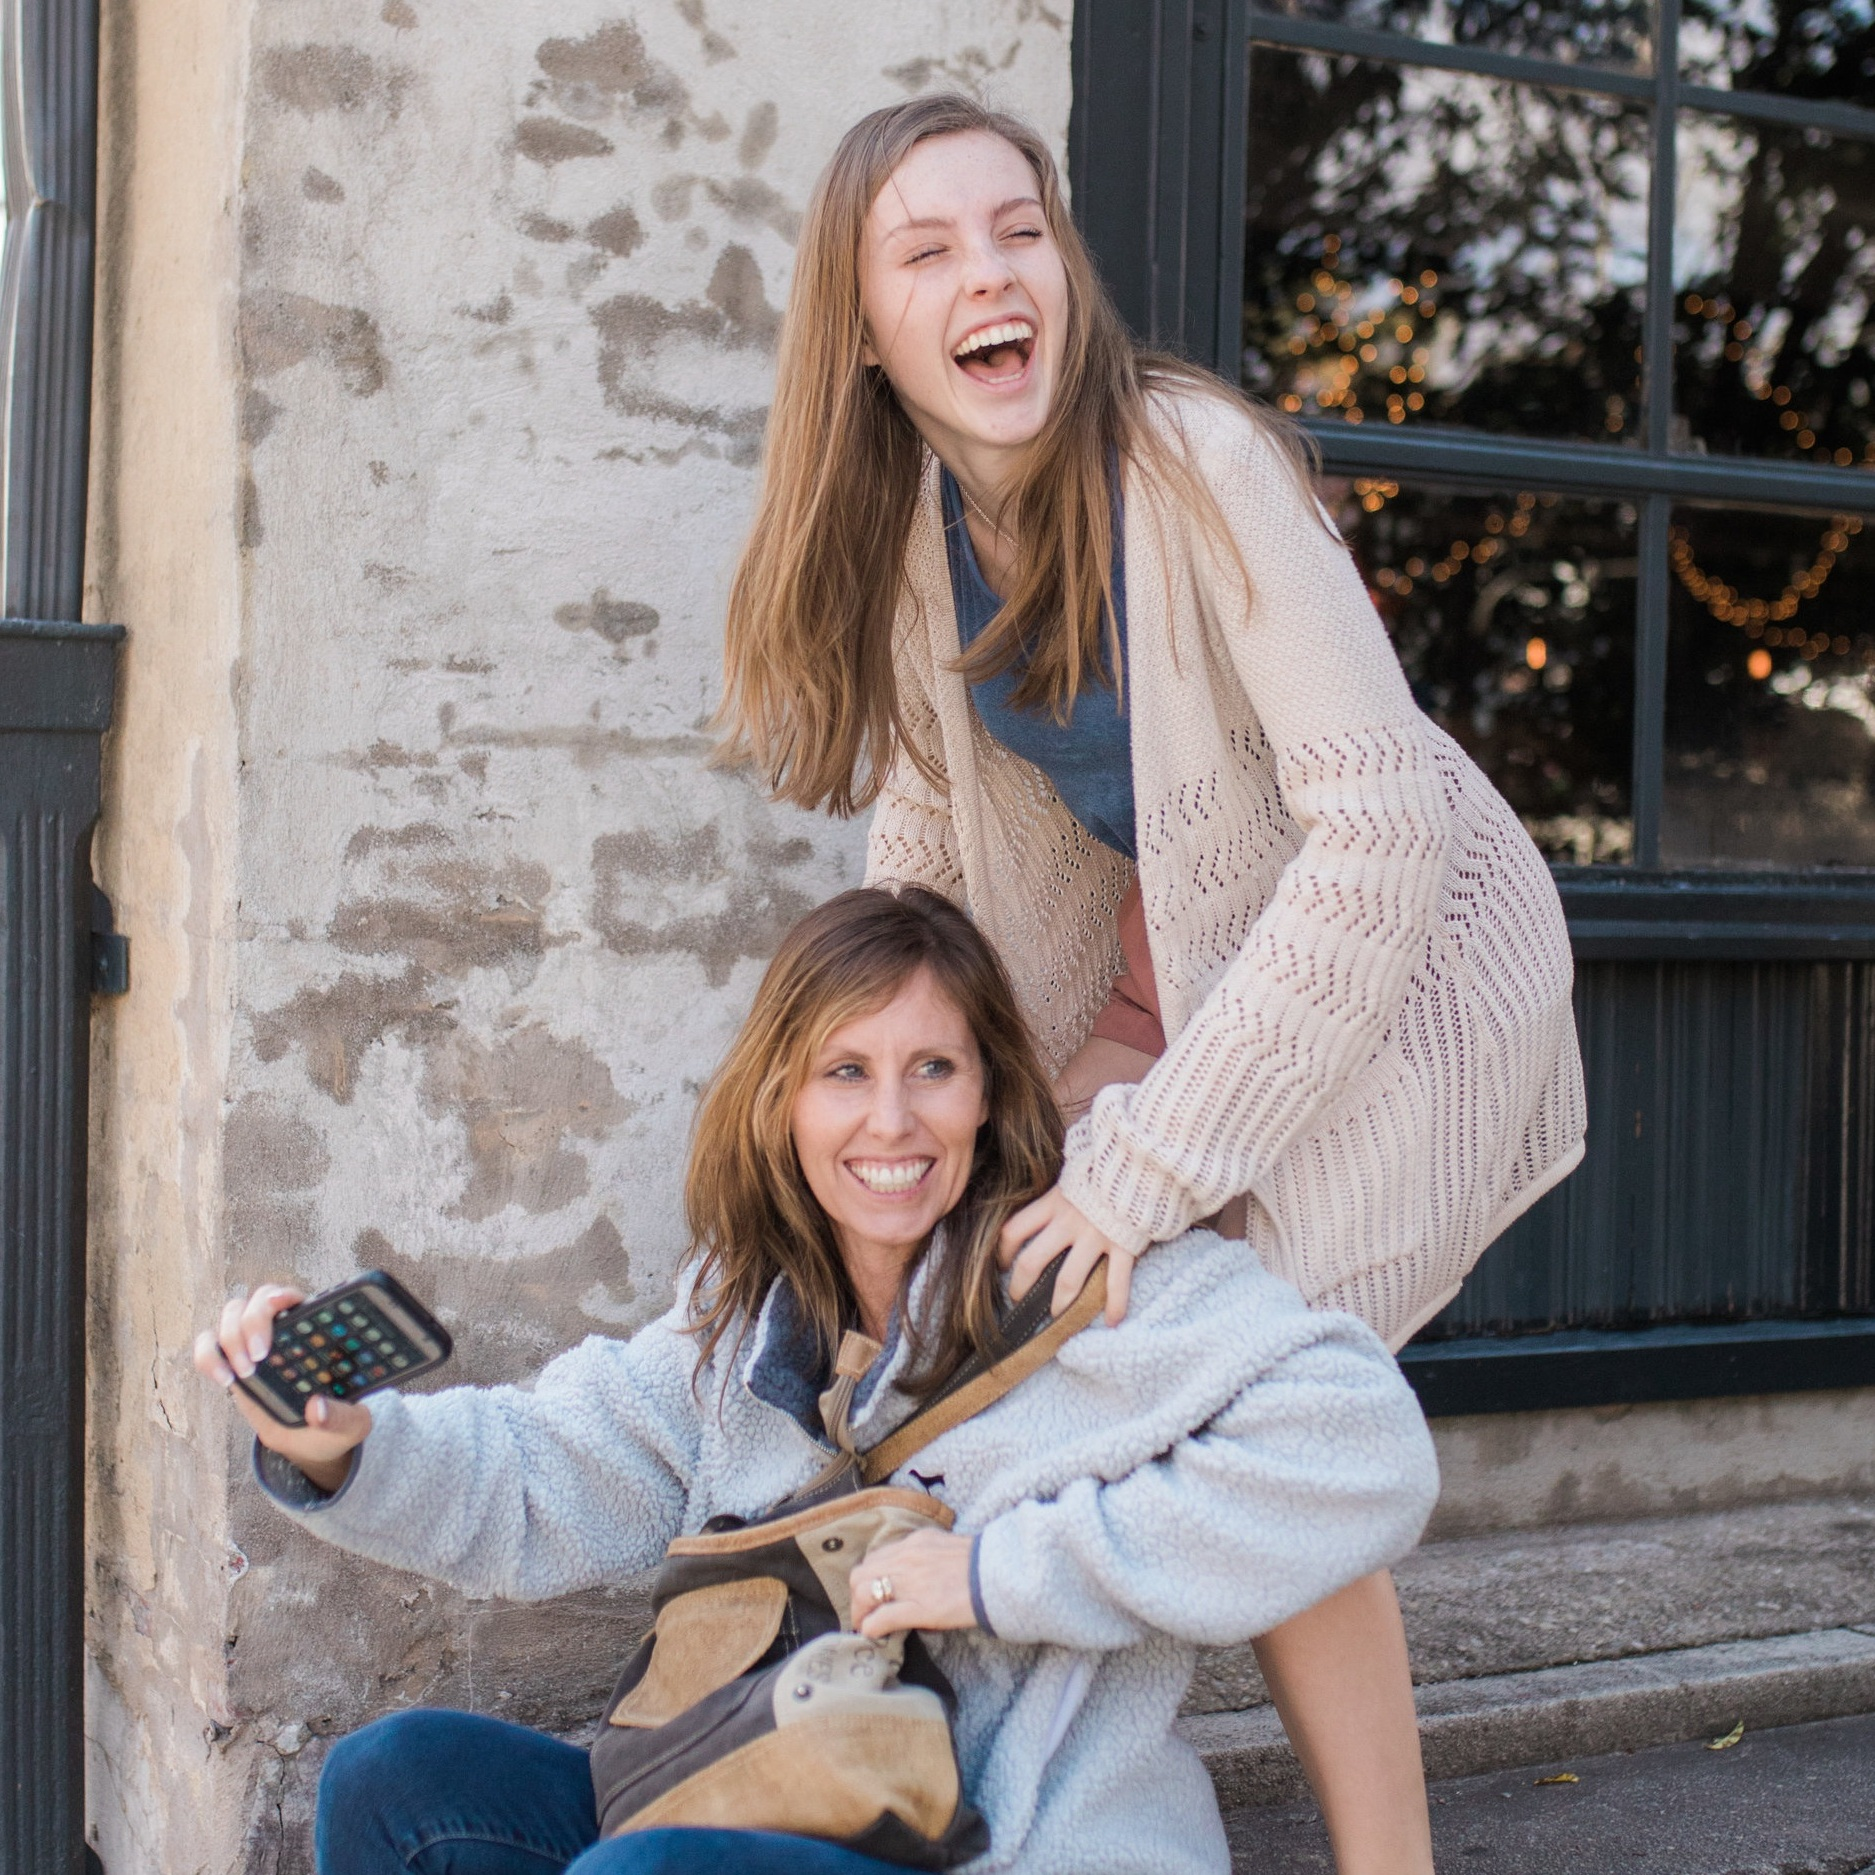 """An """"extraordinary last"""" with the ones you love - The SLP Destination Experience is the perfect time to get away with your parents for a big adventure before you head off to college. You can also incorporate this session into that spring break or weekend trip you're taking with your best friend and their parents."""